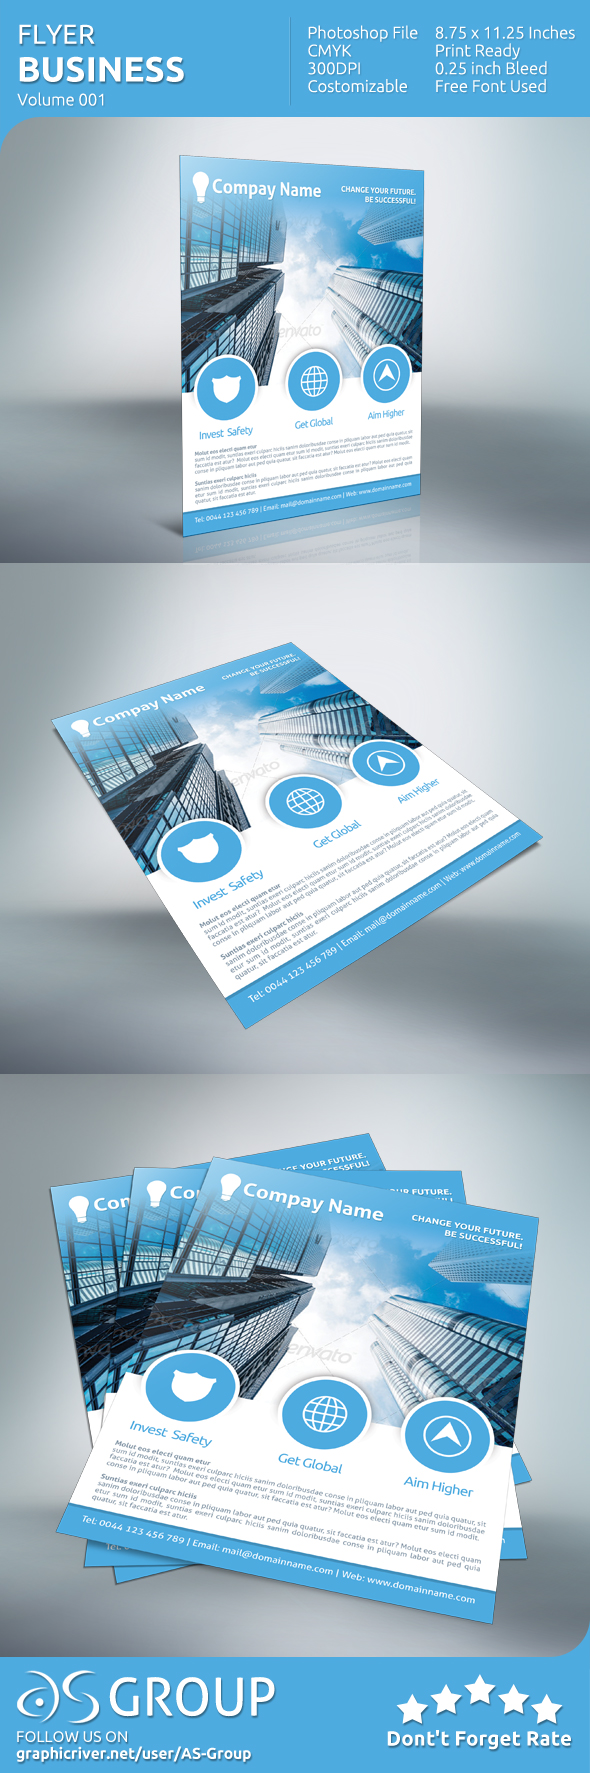 business_flyer-v001-as-group